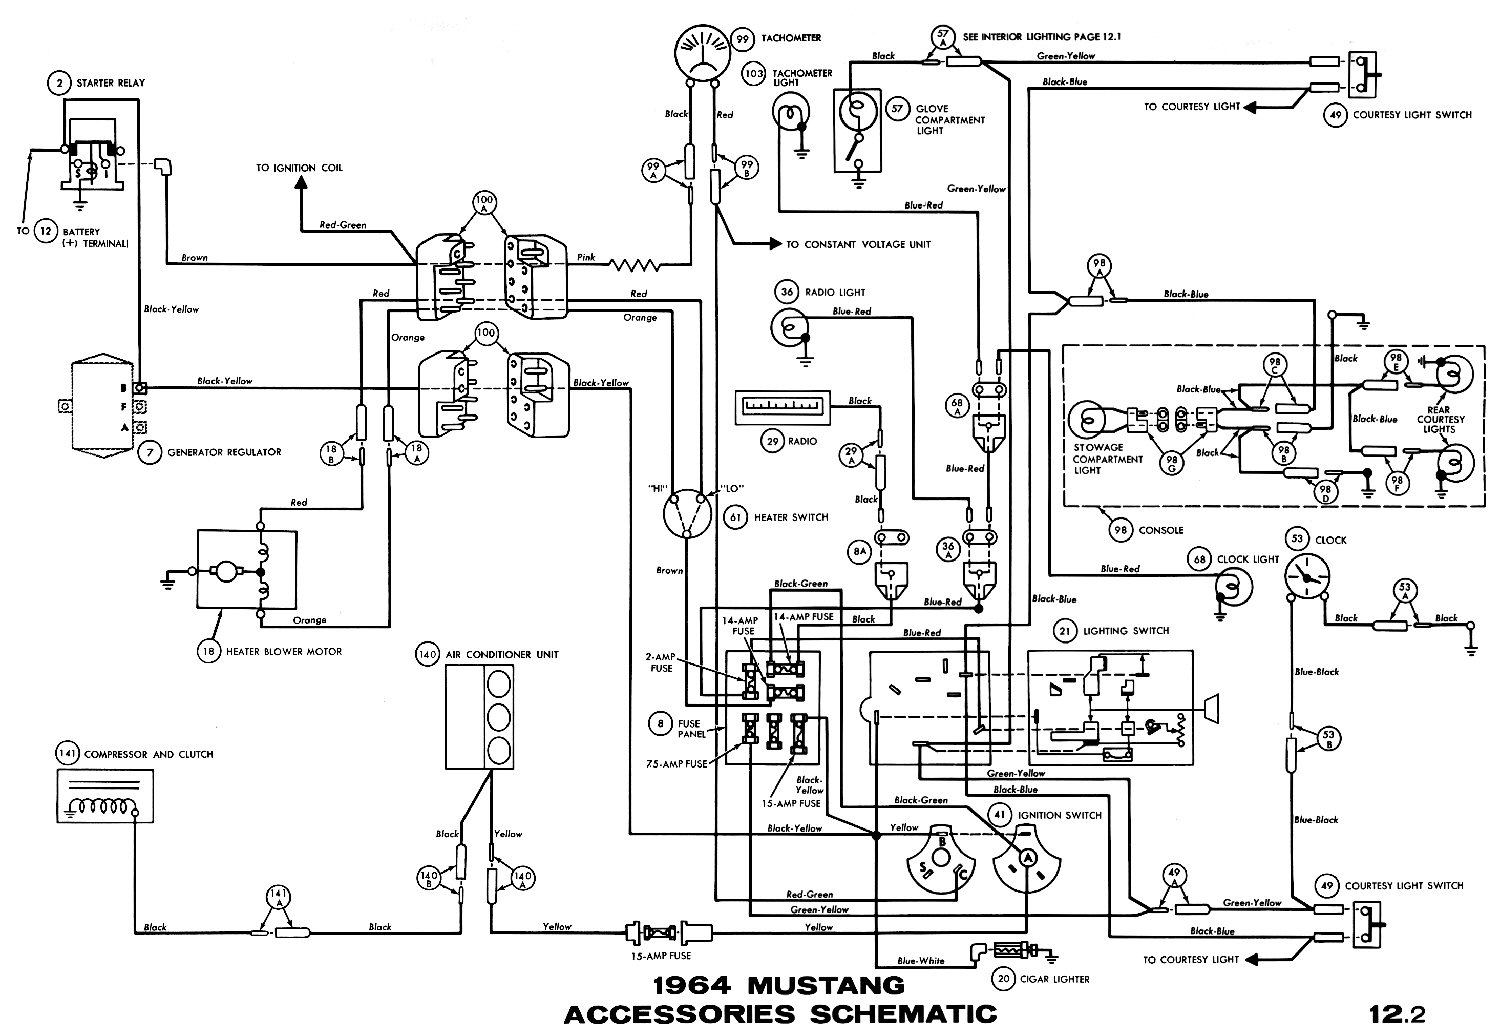 2000 Mustang Radio Wiring Diagram from averagejoerestoration.com